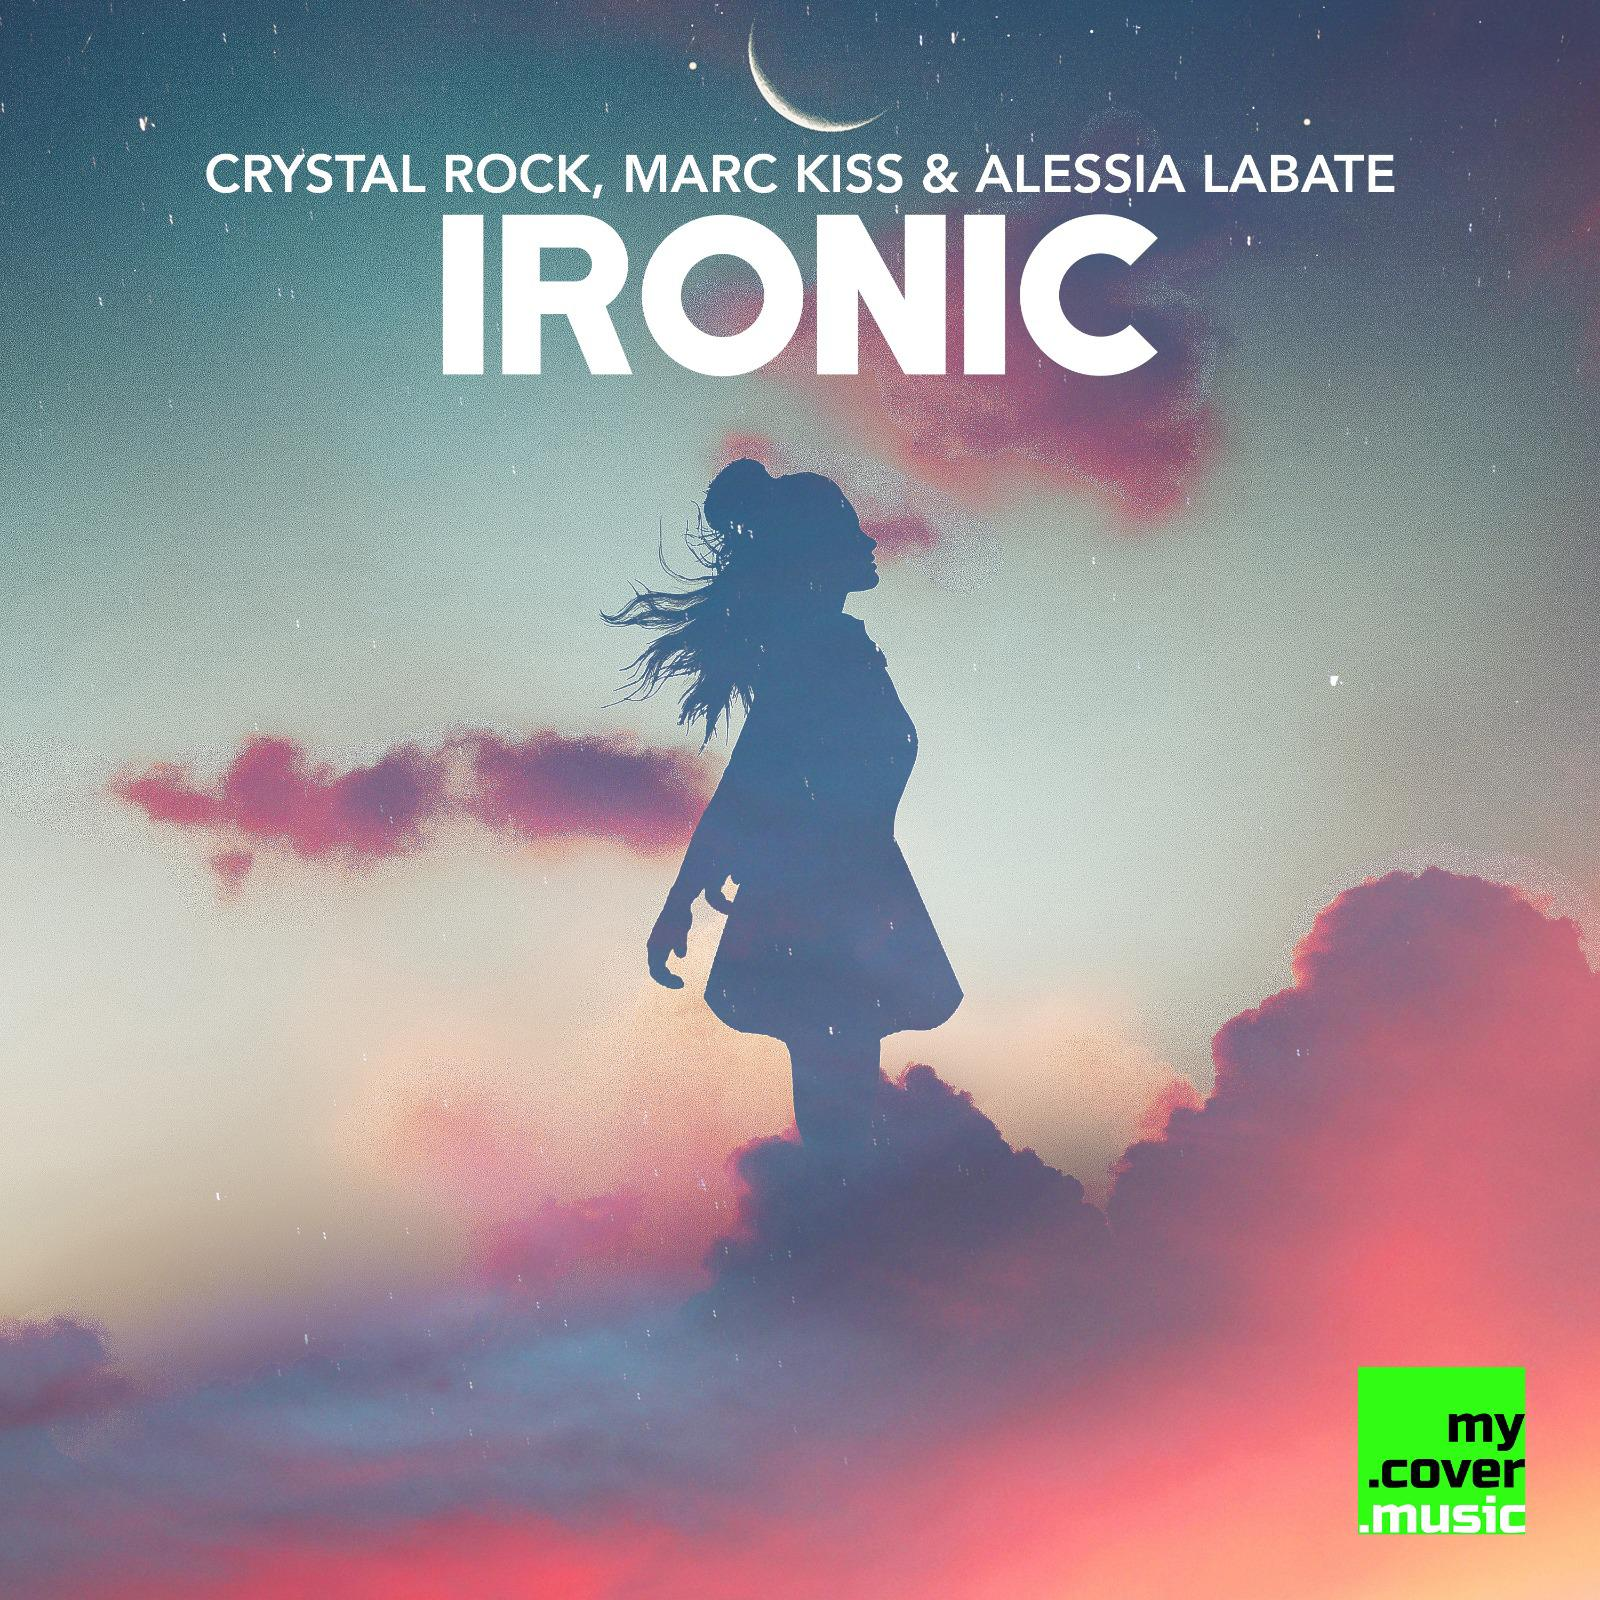 Crystal Rock & Marc Kiss ft. Alessia Labate - Ironic